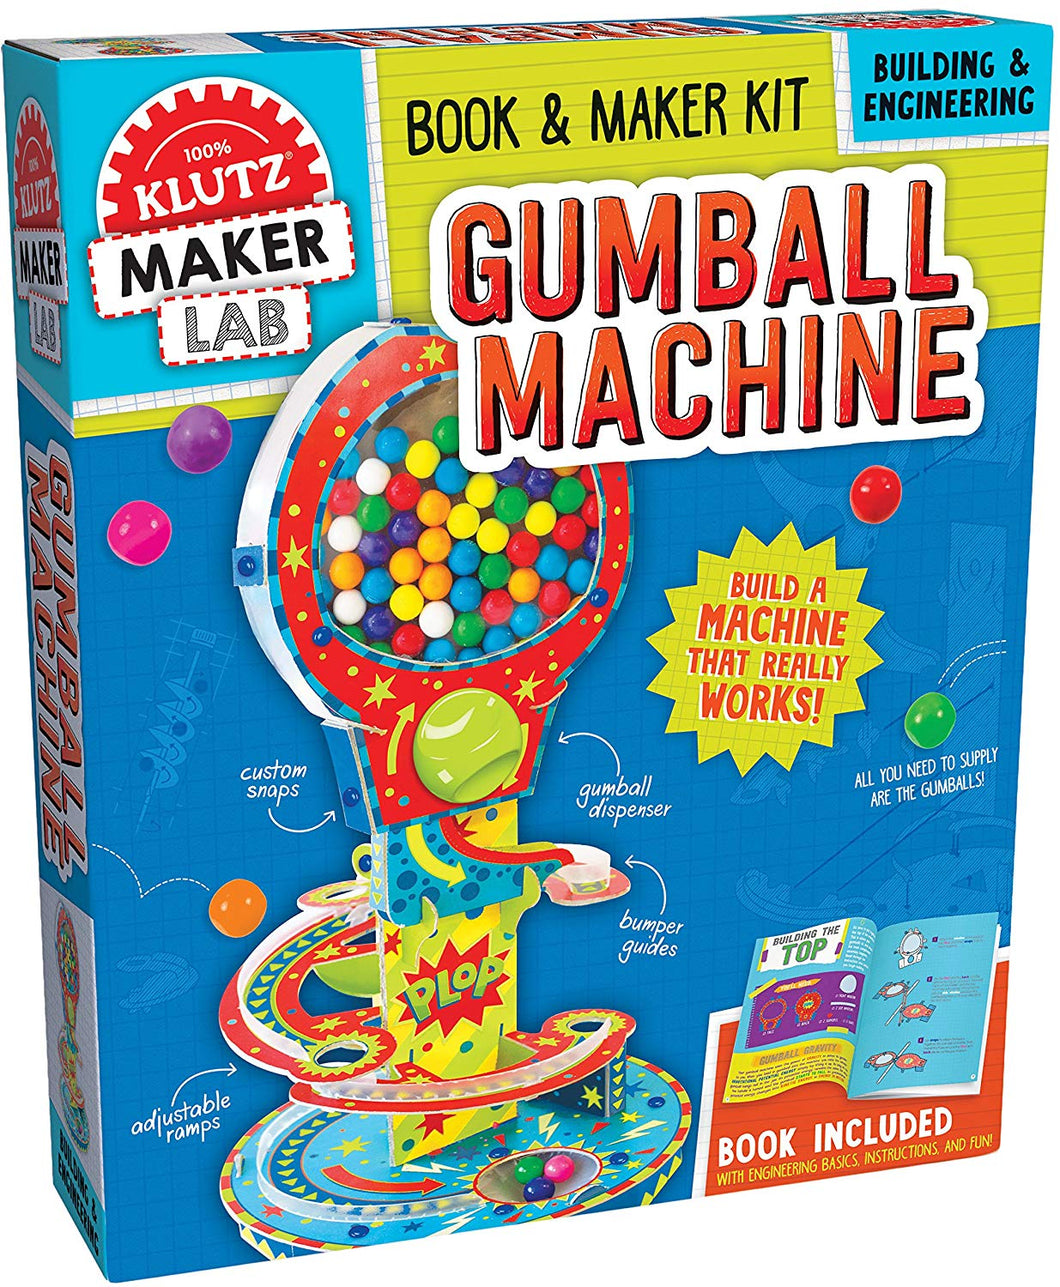 Gumball Machine - Book & Maker Kit